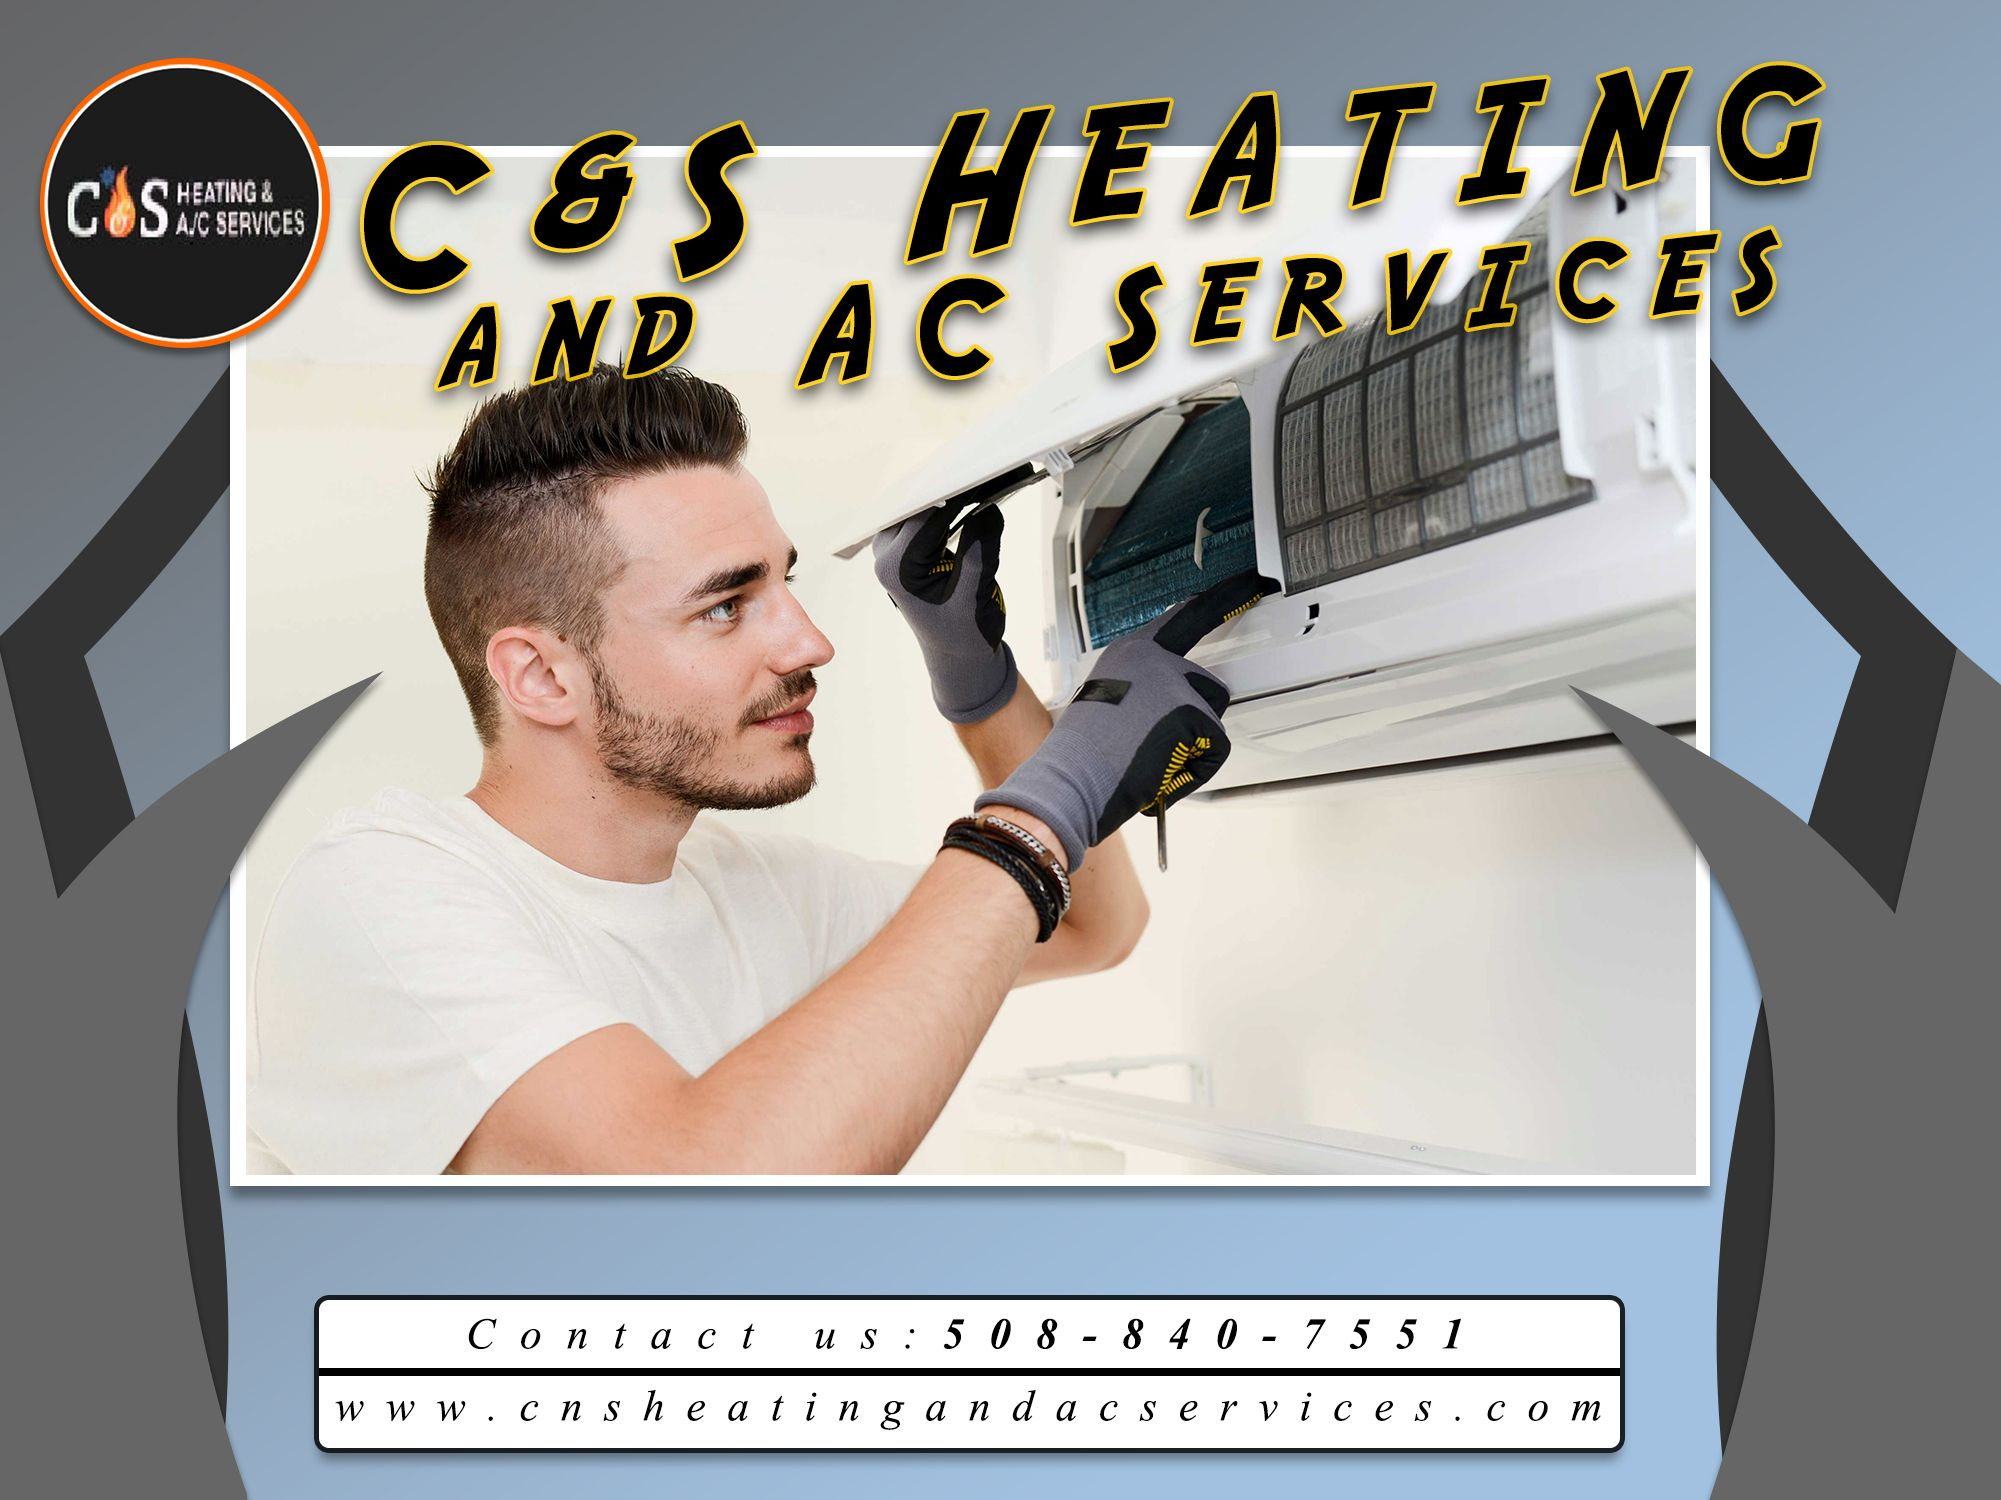 C&S Heating and AC Services install toprated heating and